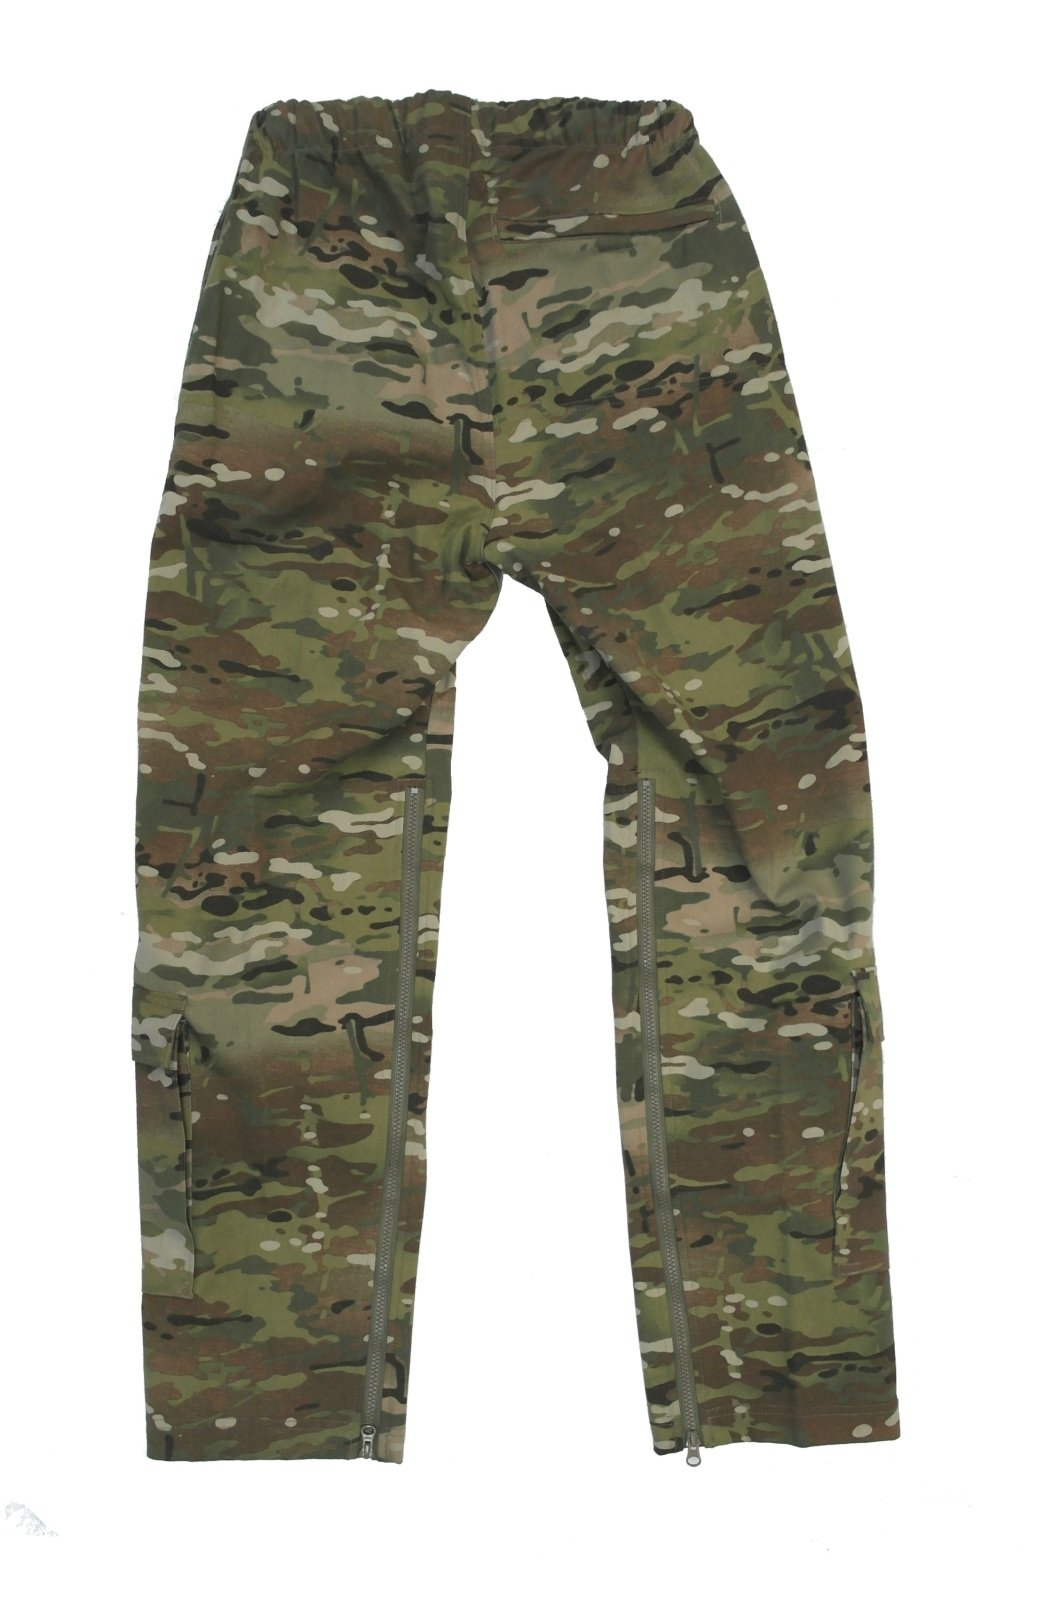 US Military Genuine Issue FREE Massif LWOL Fire-Retardant Pants, Multicam, Size XLS by Massif Mountain Gear (Image #1)